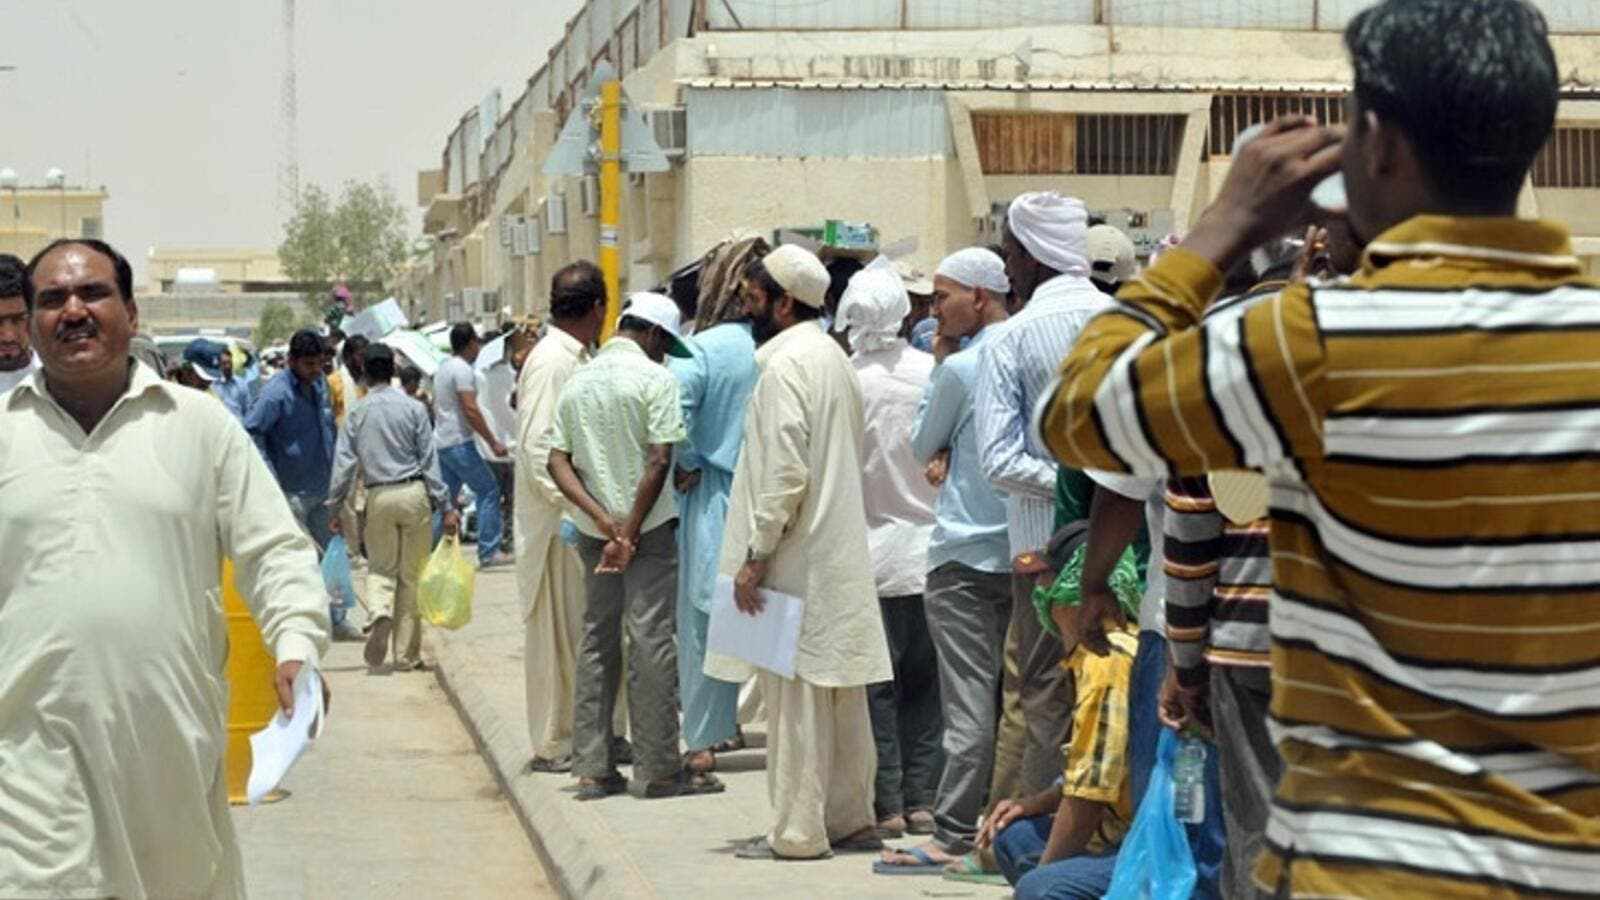 Saudi Arabia hopes to see at least 1 million foreign workers leave the country during this year's three-month grace period. (AFP/File)